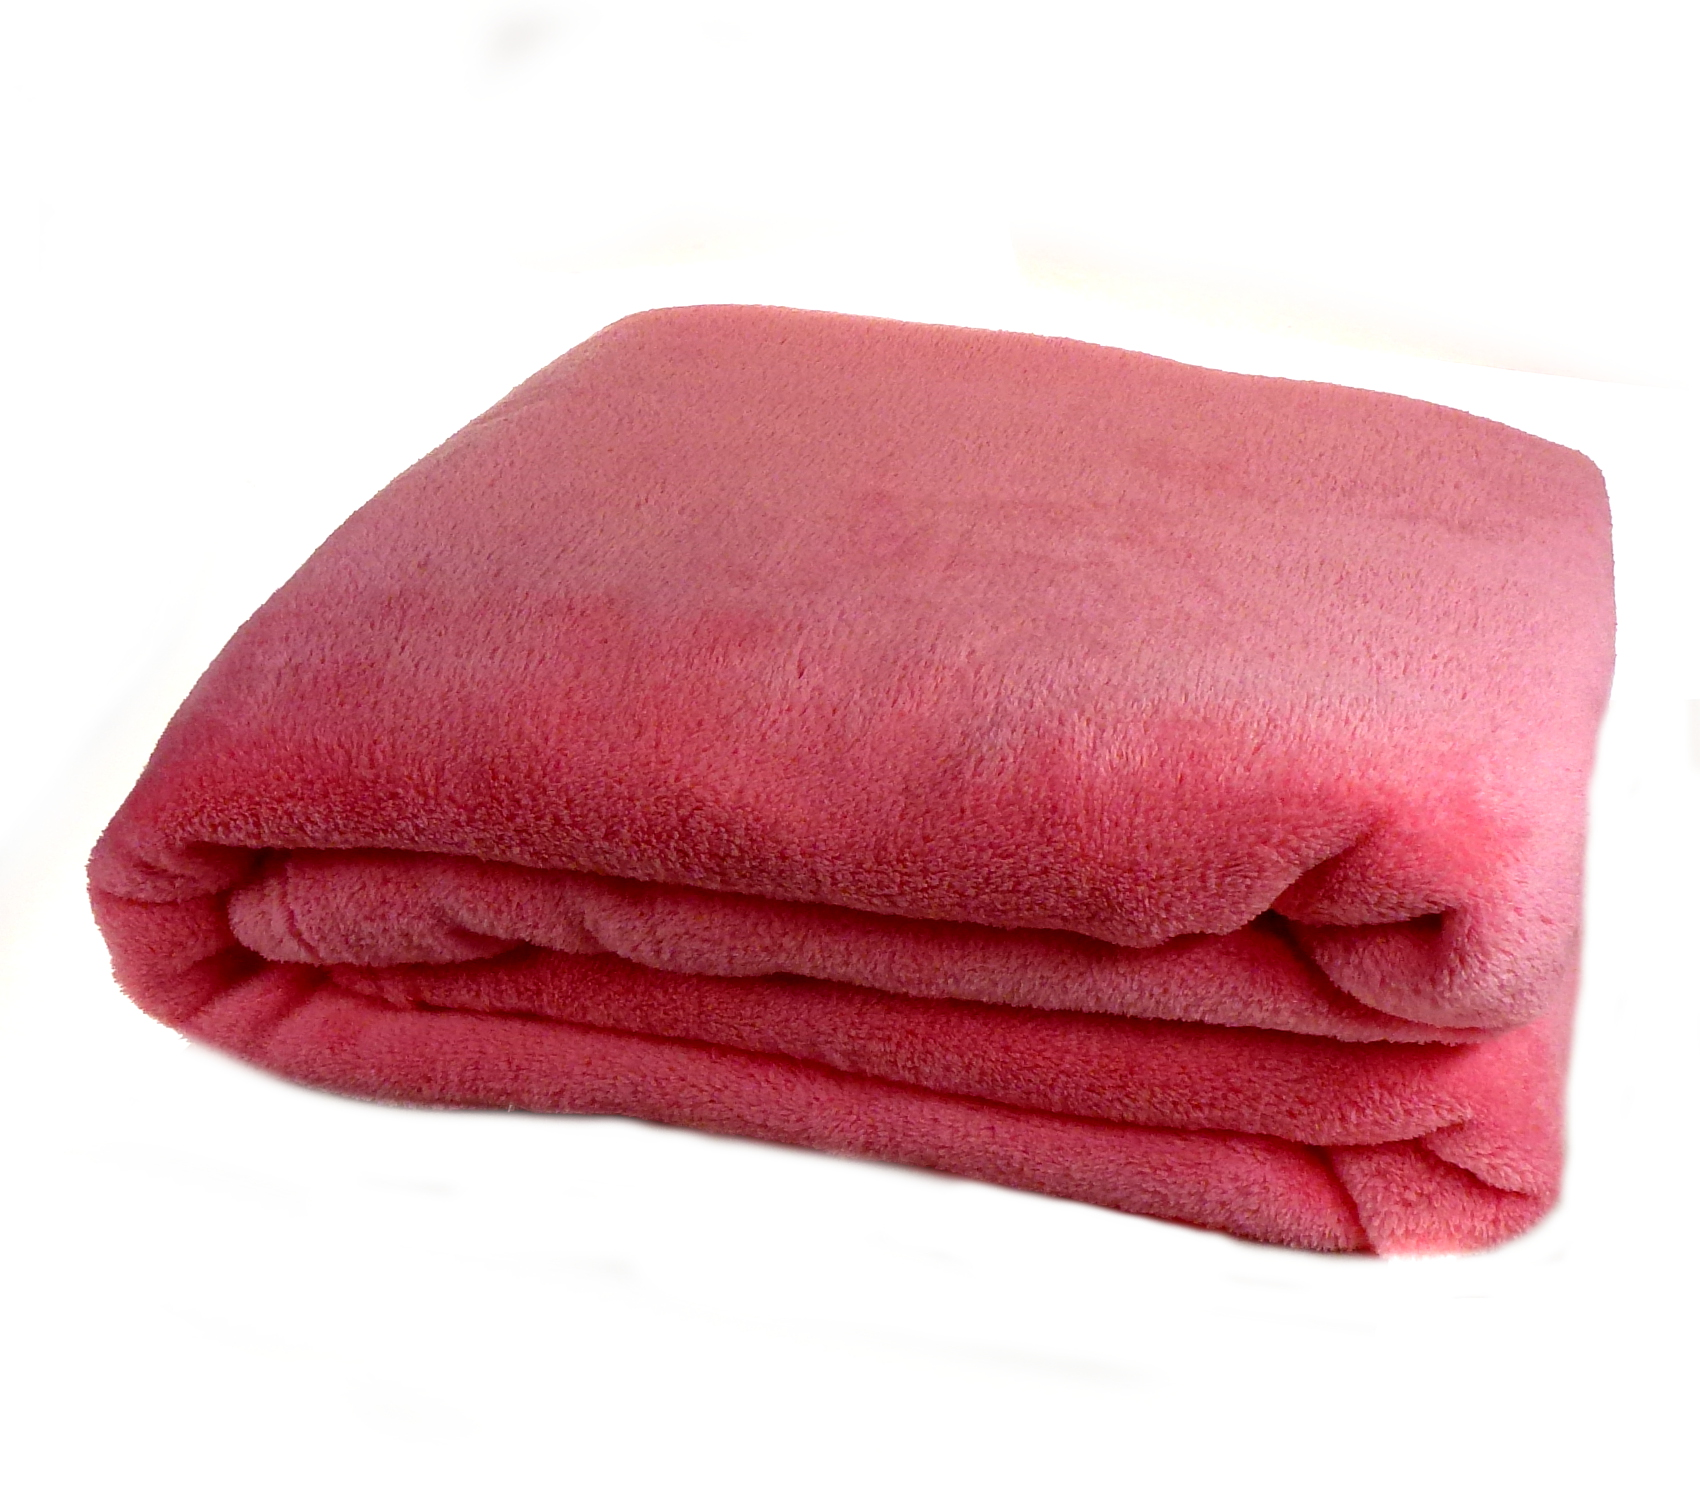 Luxury Soft Cosy Coral Fleece Throw Over Bed Sofa Home Fleecy